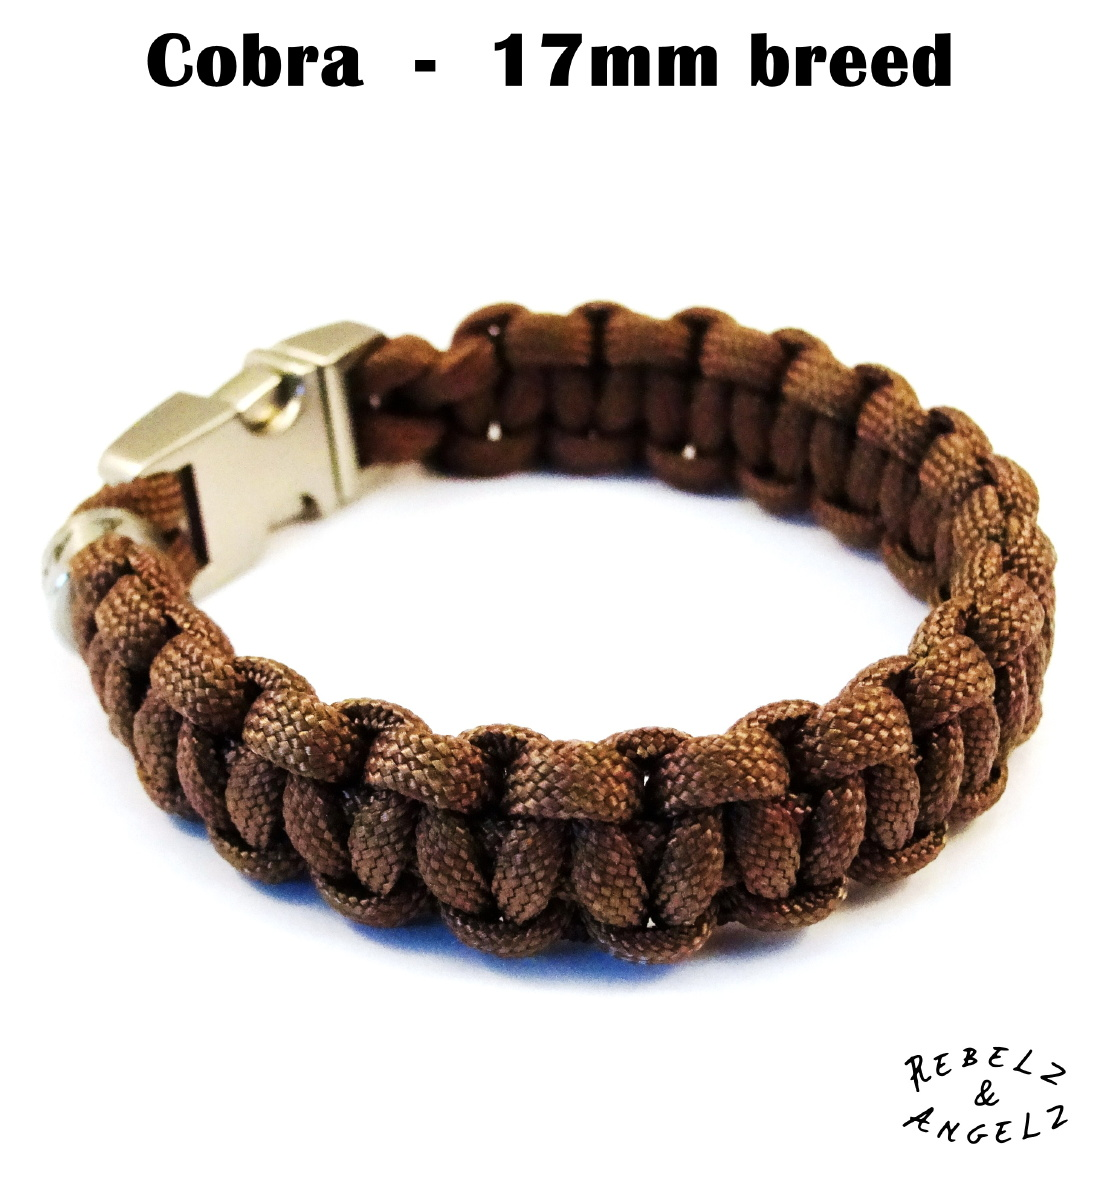 17mm brede paracord cobra weving / knoop / vlecht.